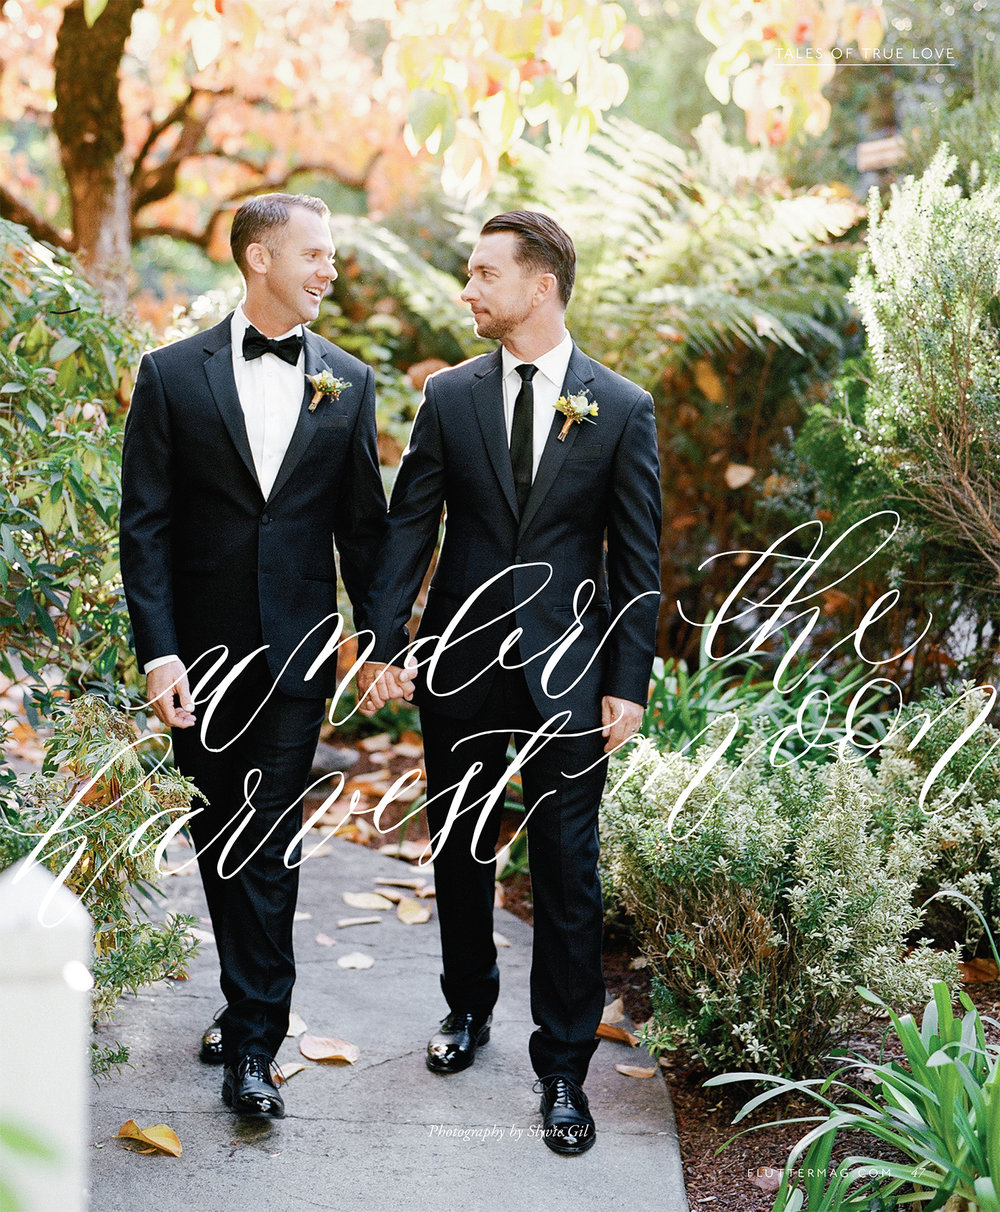 Chris & Andrew's feature cover in Flutter Magazine Issue 11; Sylvie Gil Photography